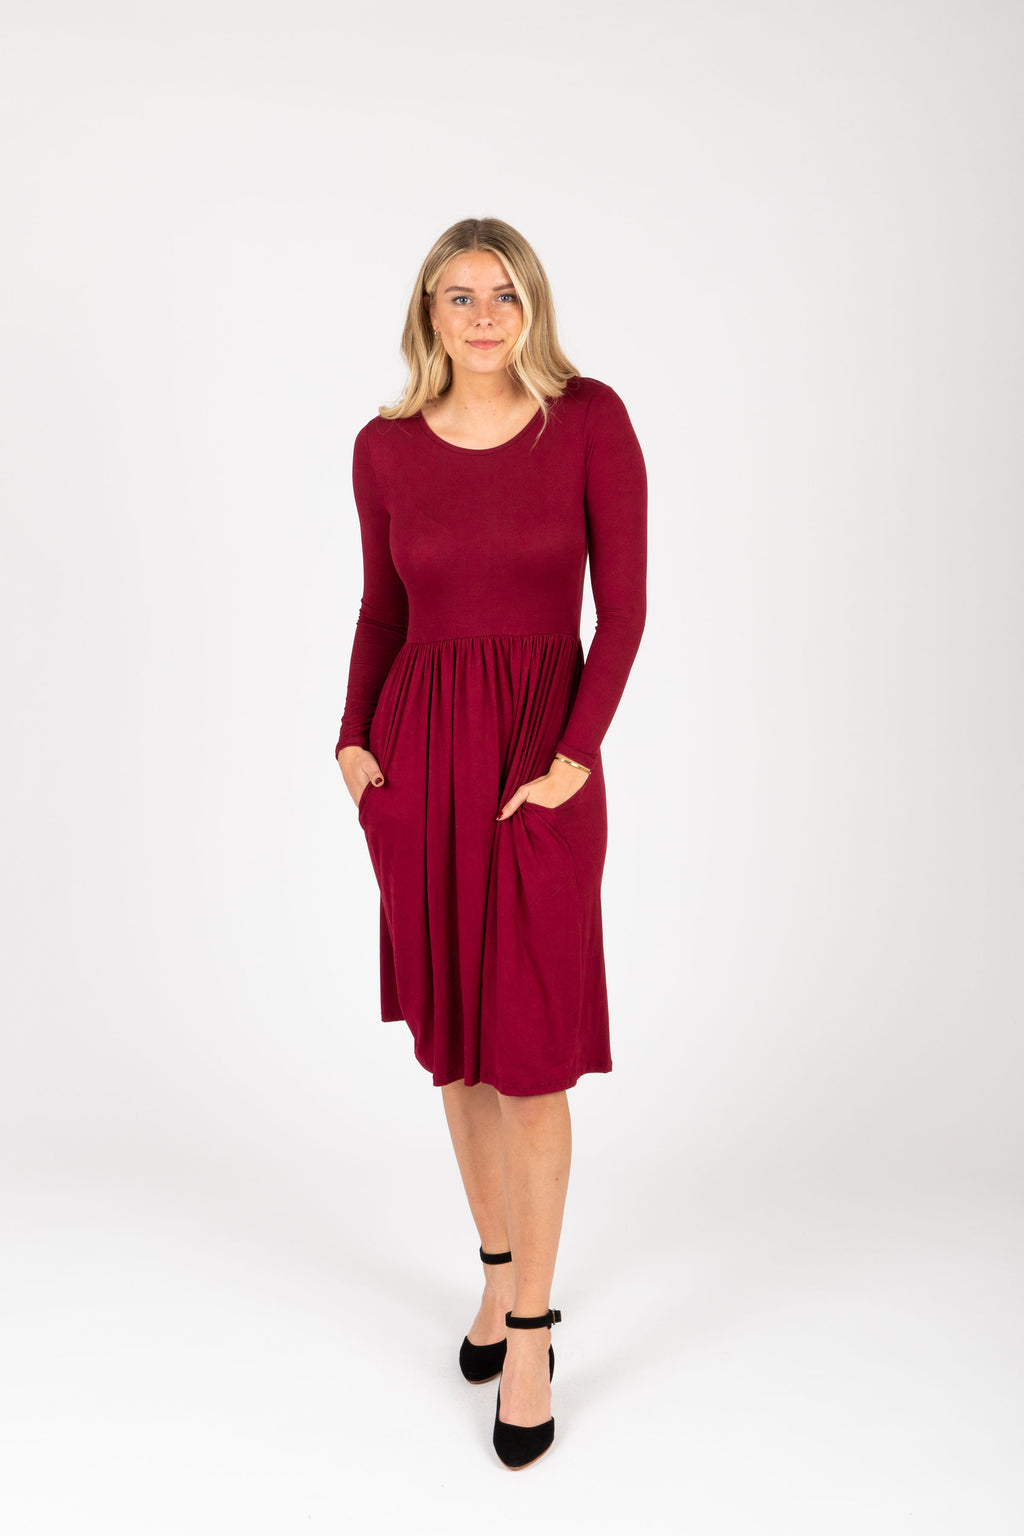 The Rosie Casual Empire Dress in Burgundy